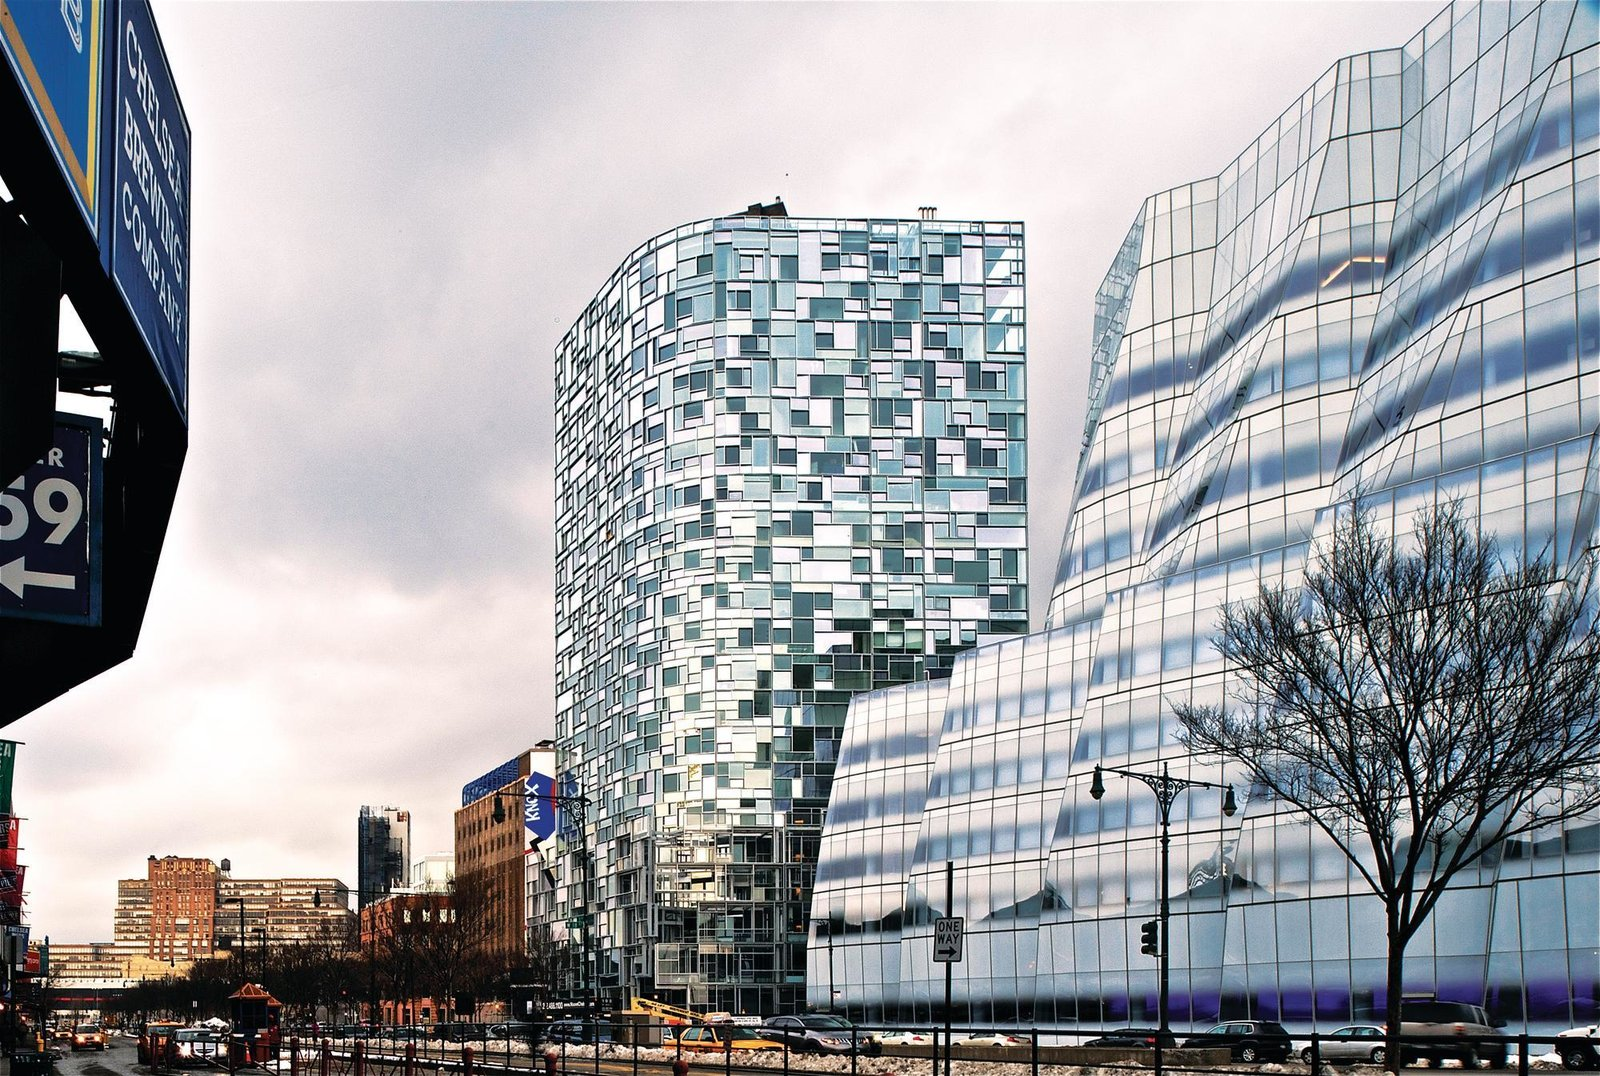 photo 4 of 11 in 10 jean nouvel buildings we love dwell